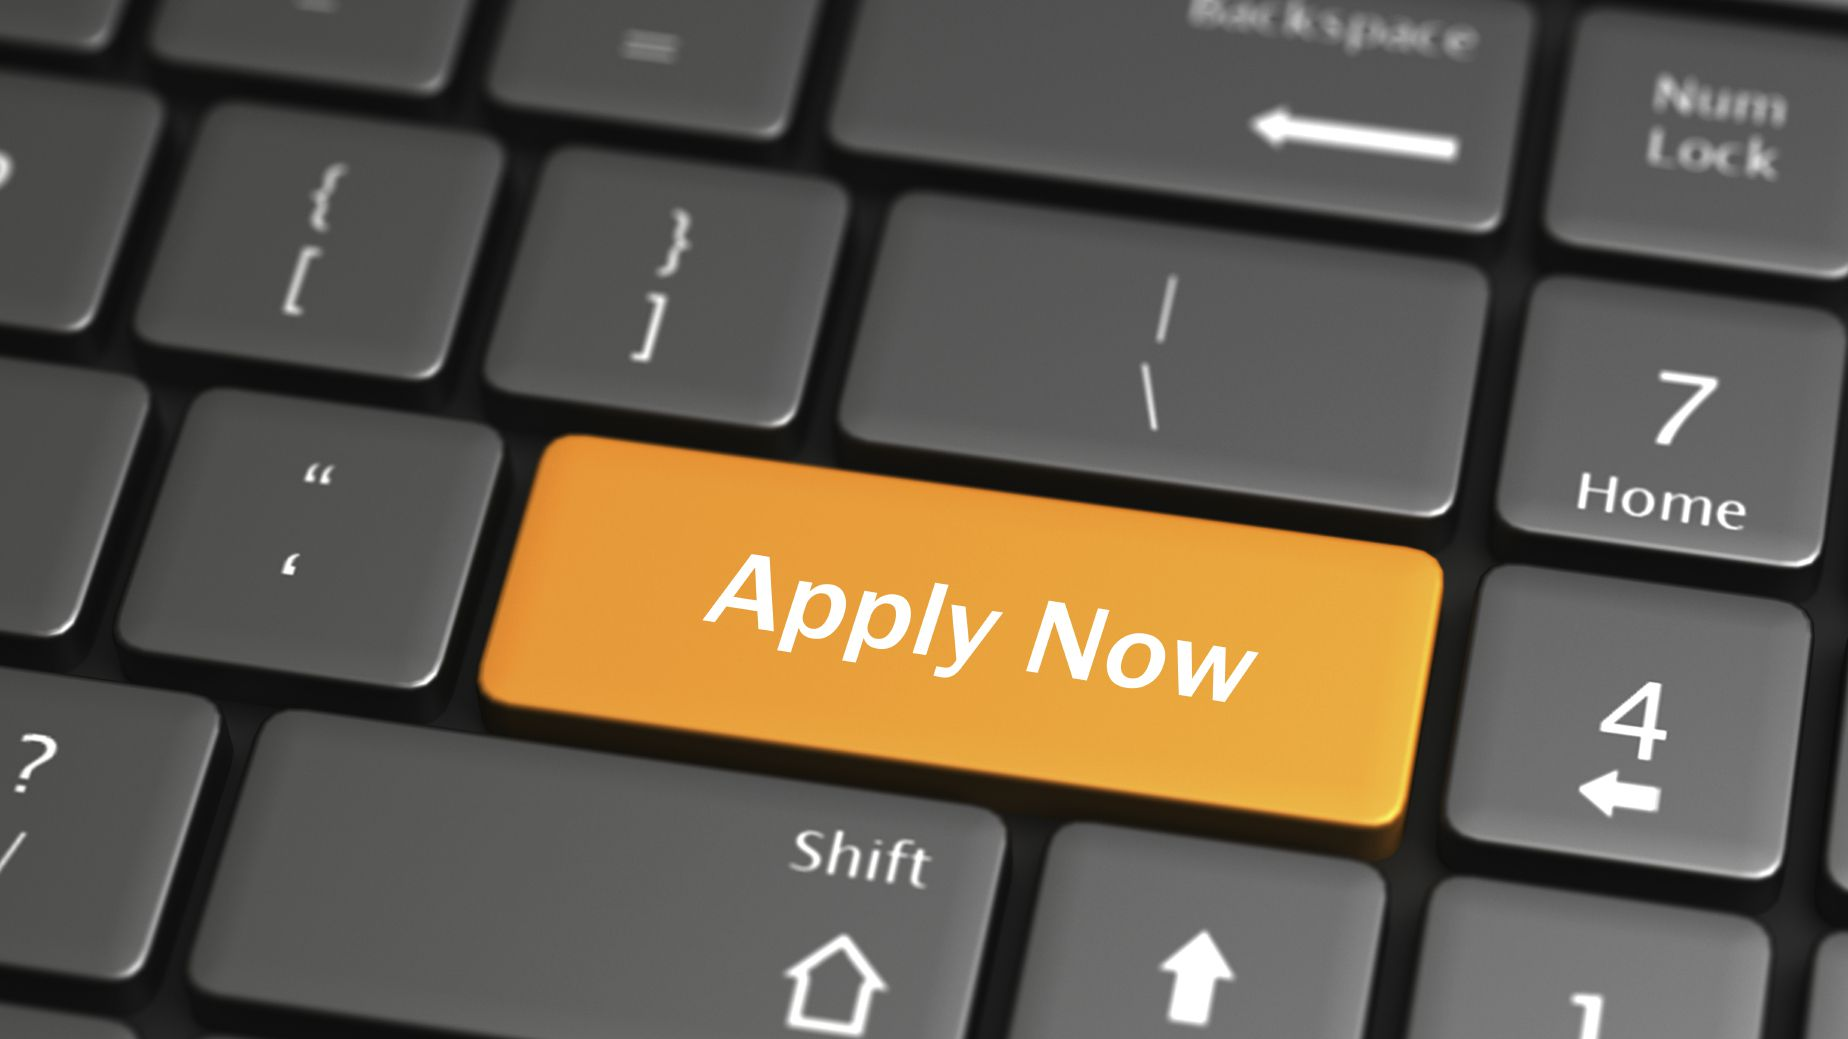 Learn How To Apply For Jobs Online